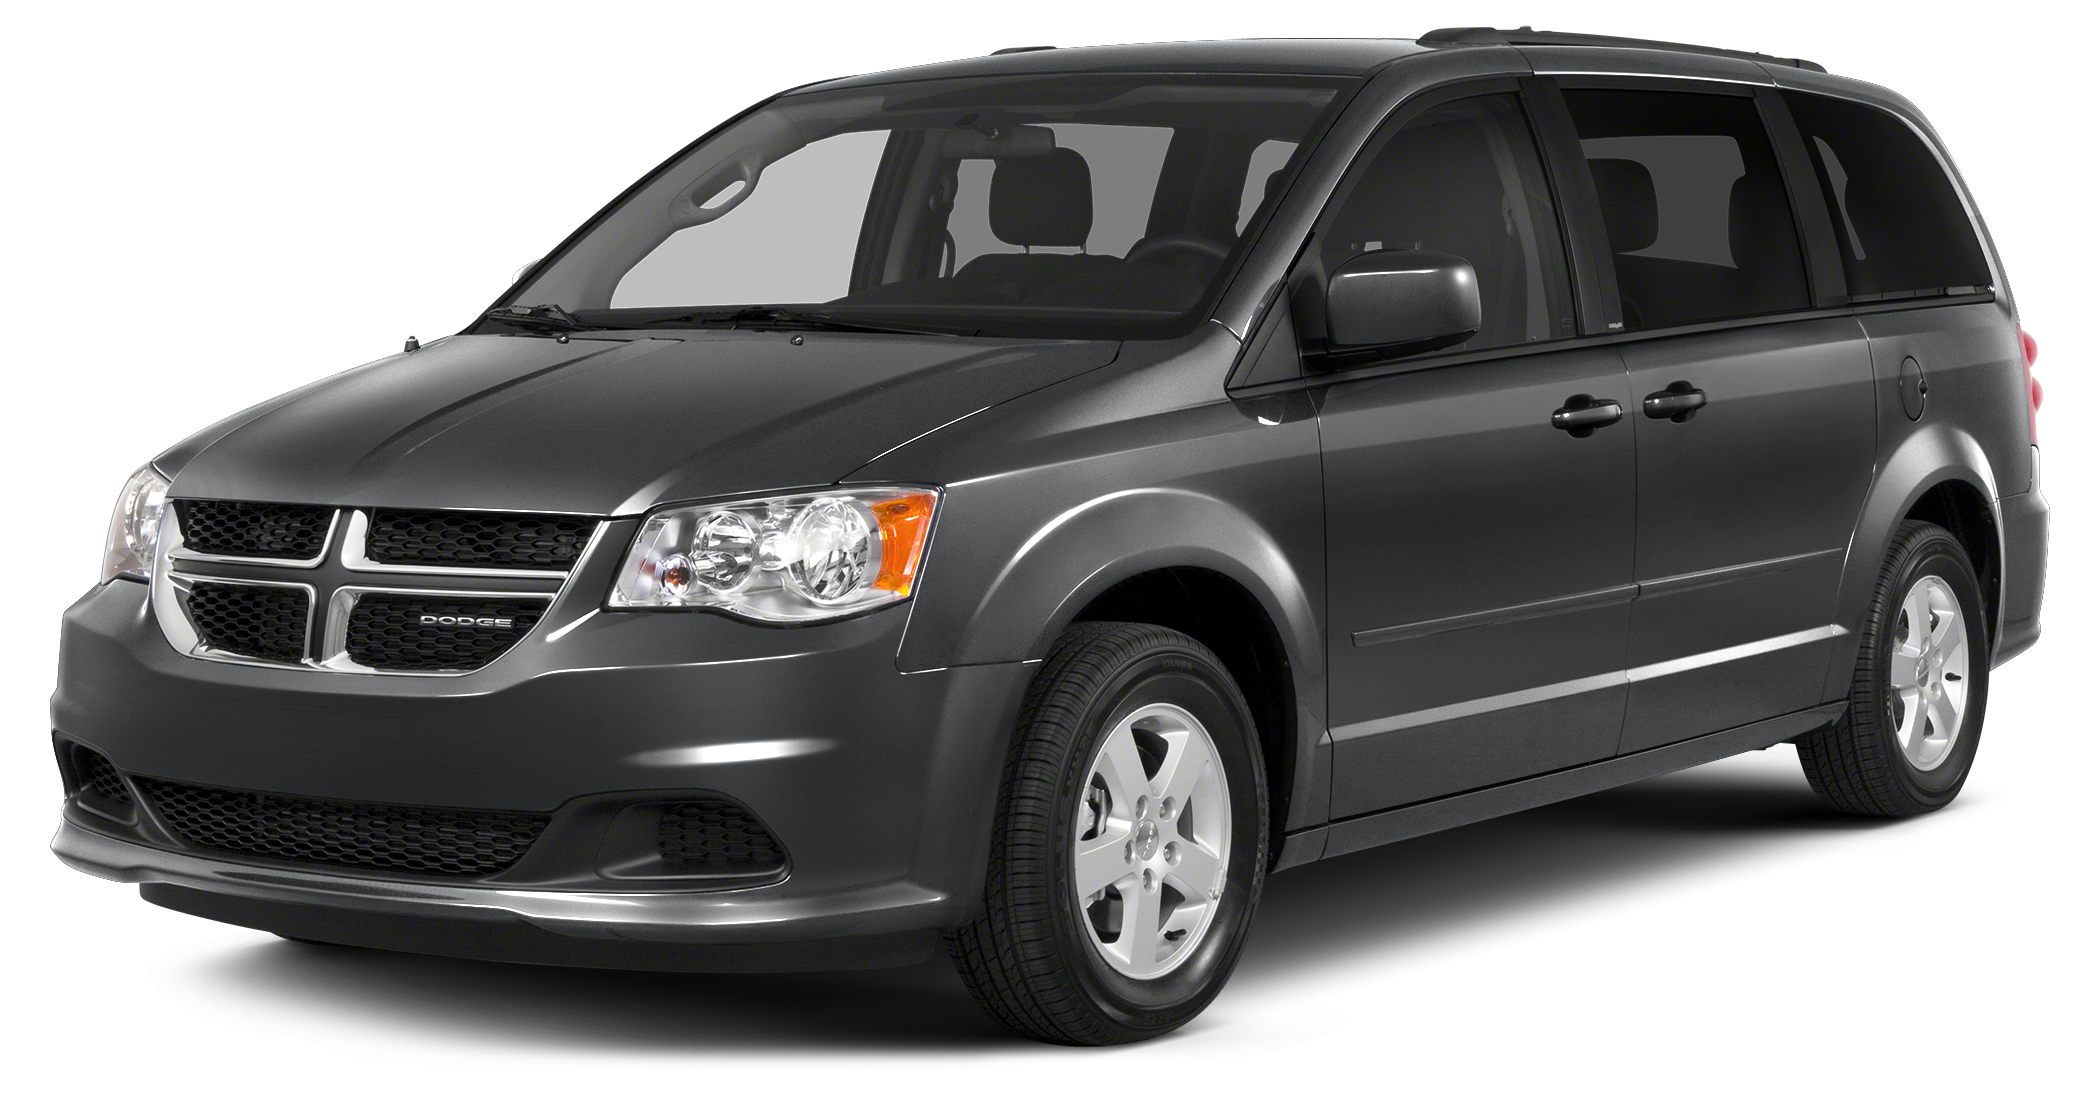 2015 Dodge Grand Caravan SXT Lake Keowee Chrysler Dodge Jeep has a wide selection of exceptional p